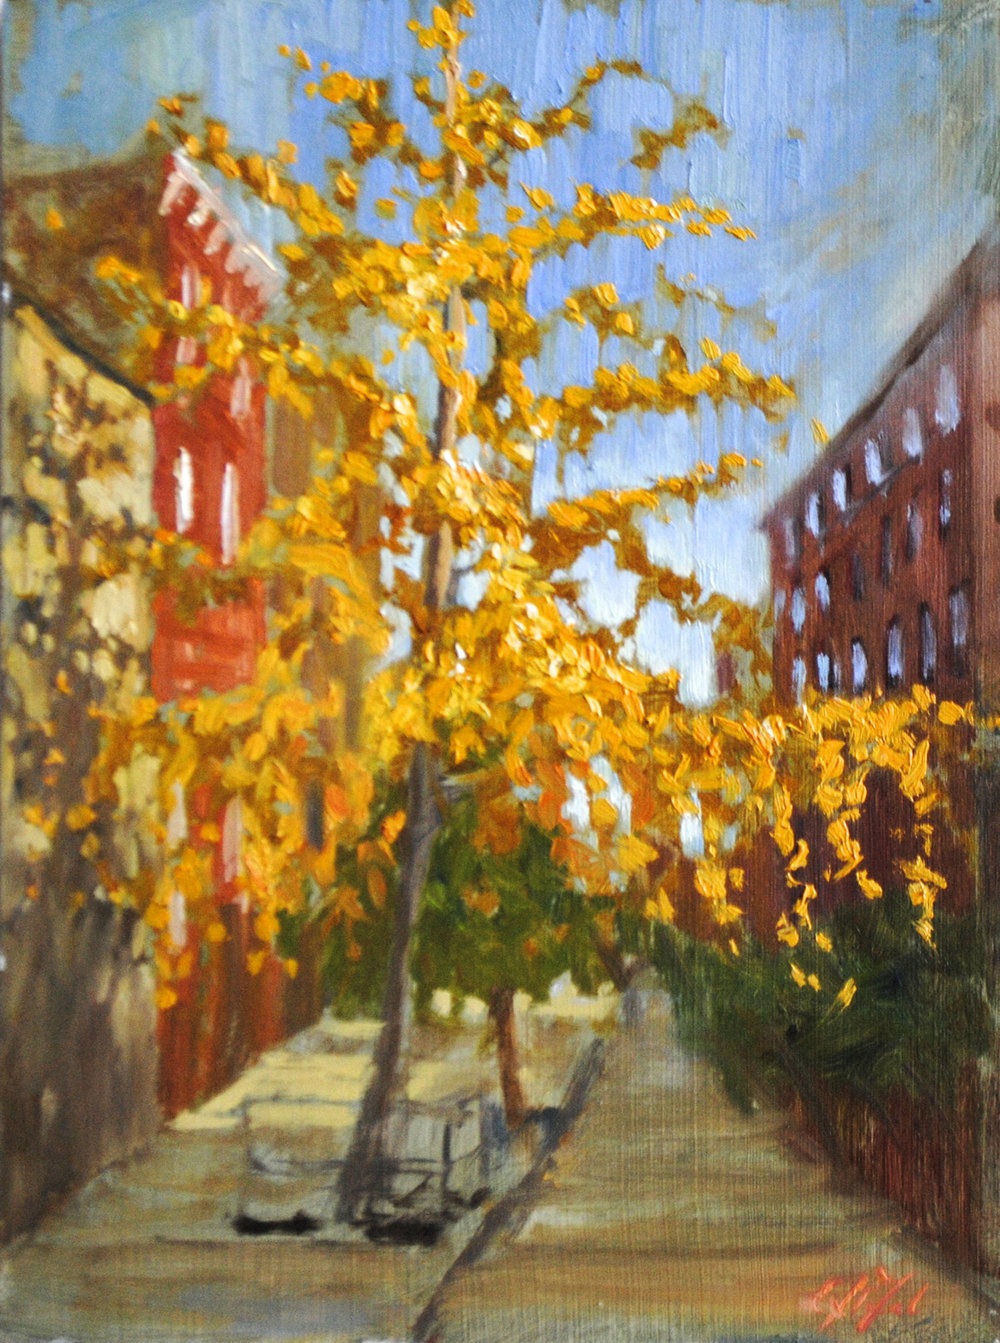 W-NITC-Village Gingko-Dalrymple-12x16-oil on canvas-2011-SOLD.jpg